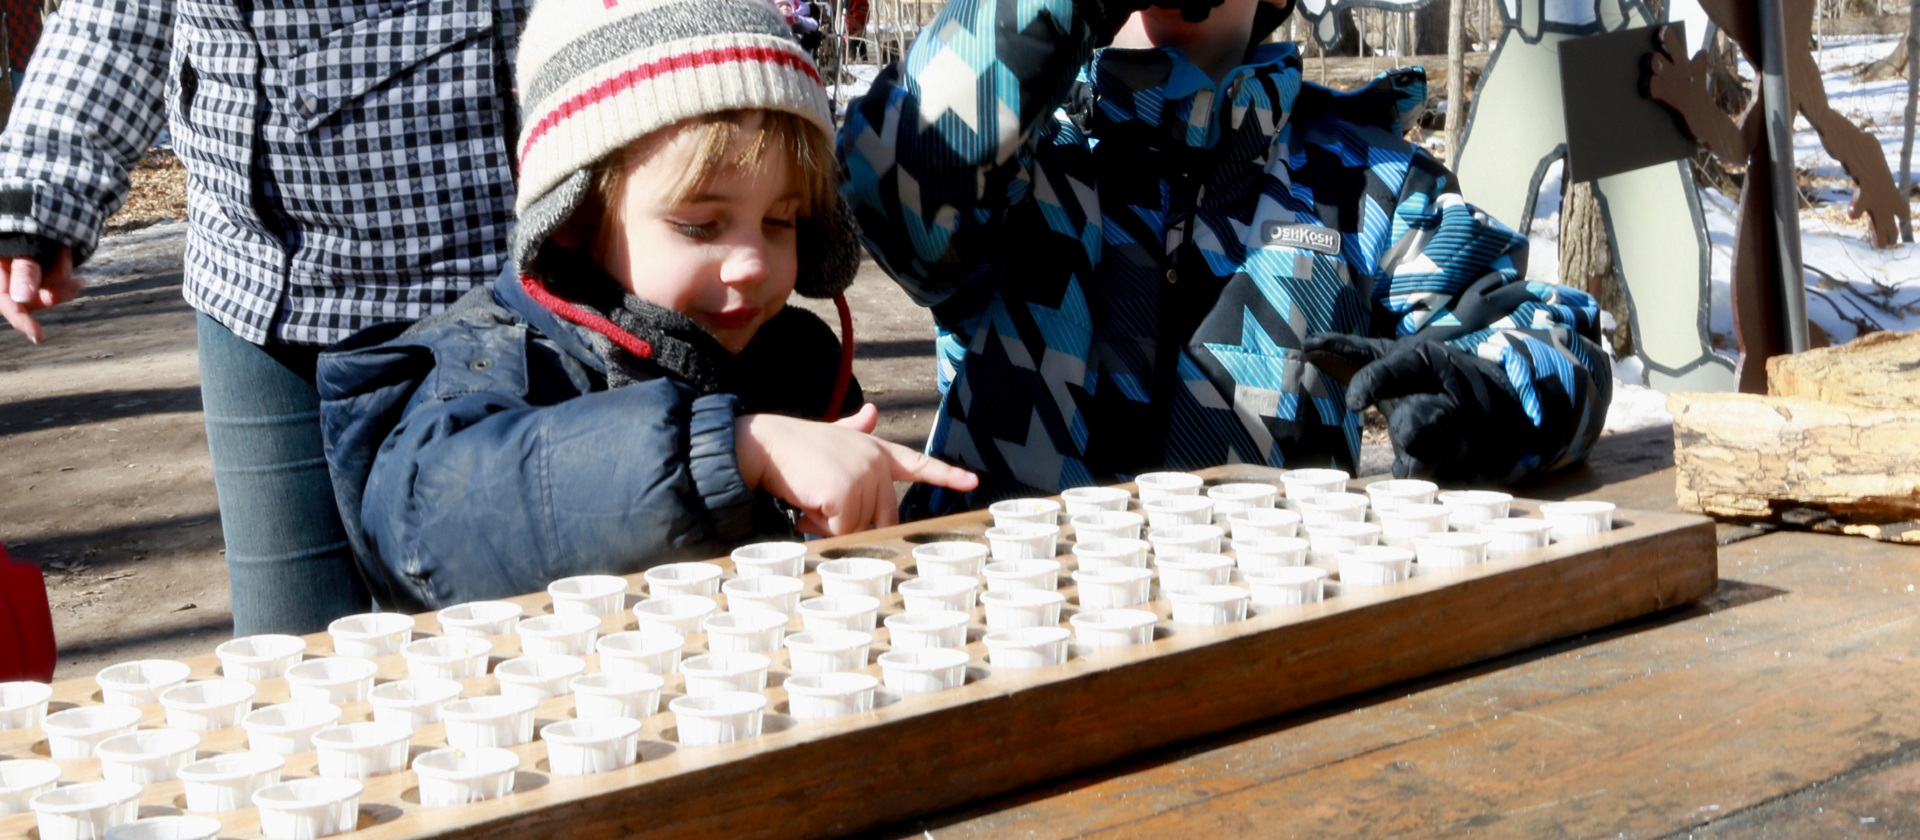 youngsters enjoy the sugarbush maple syrup festival at bruce's mill conservation area